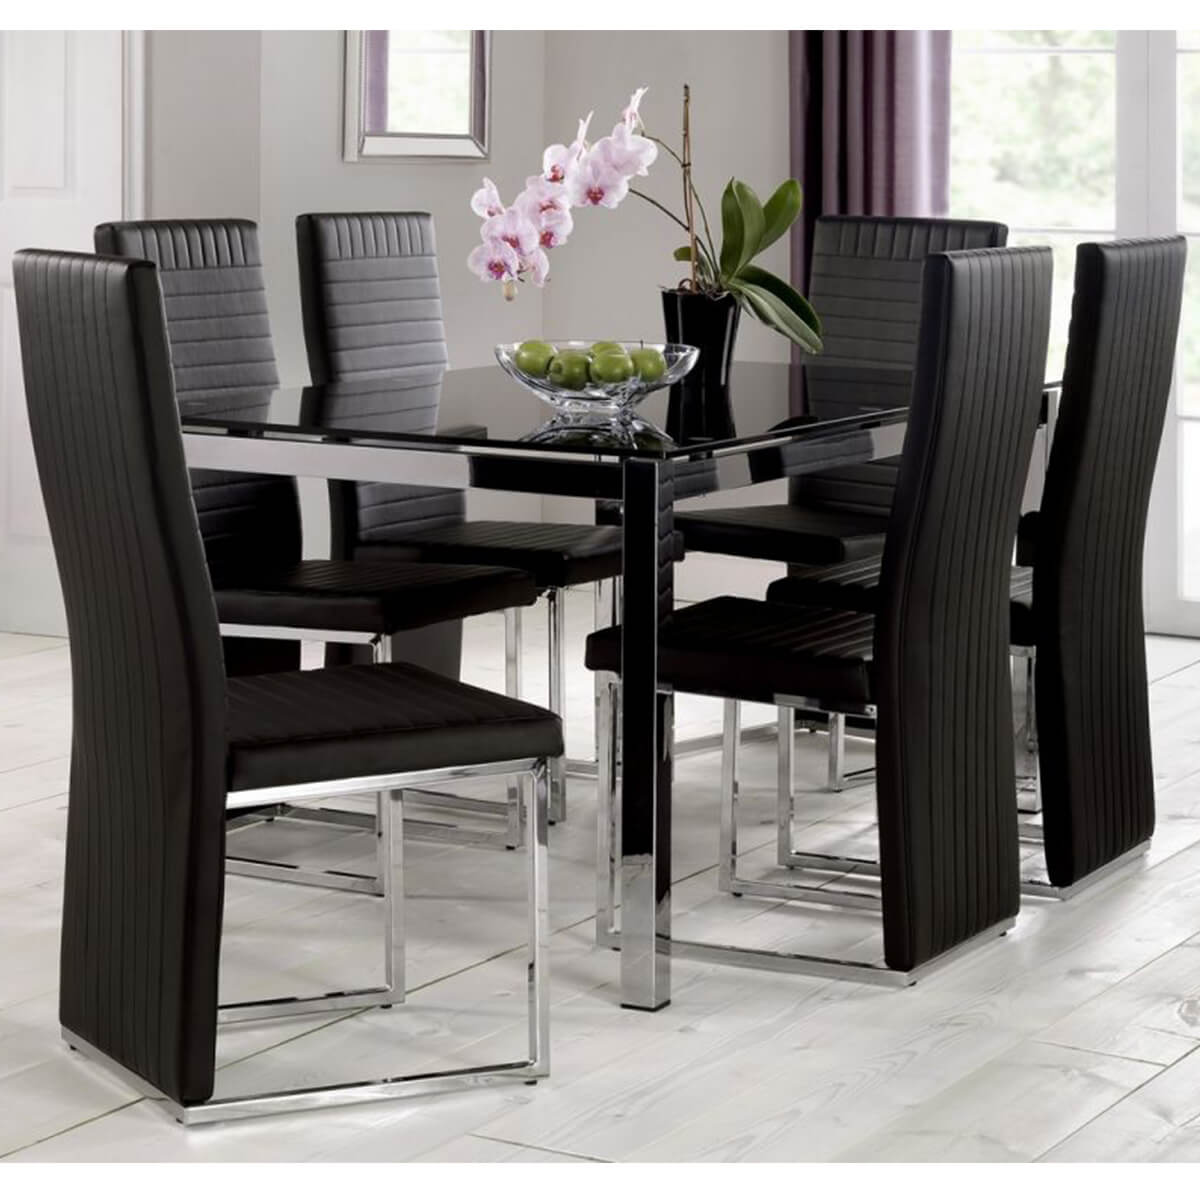 Dining Sets Black: Tempo Black Dining Table With Black Chairs